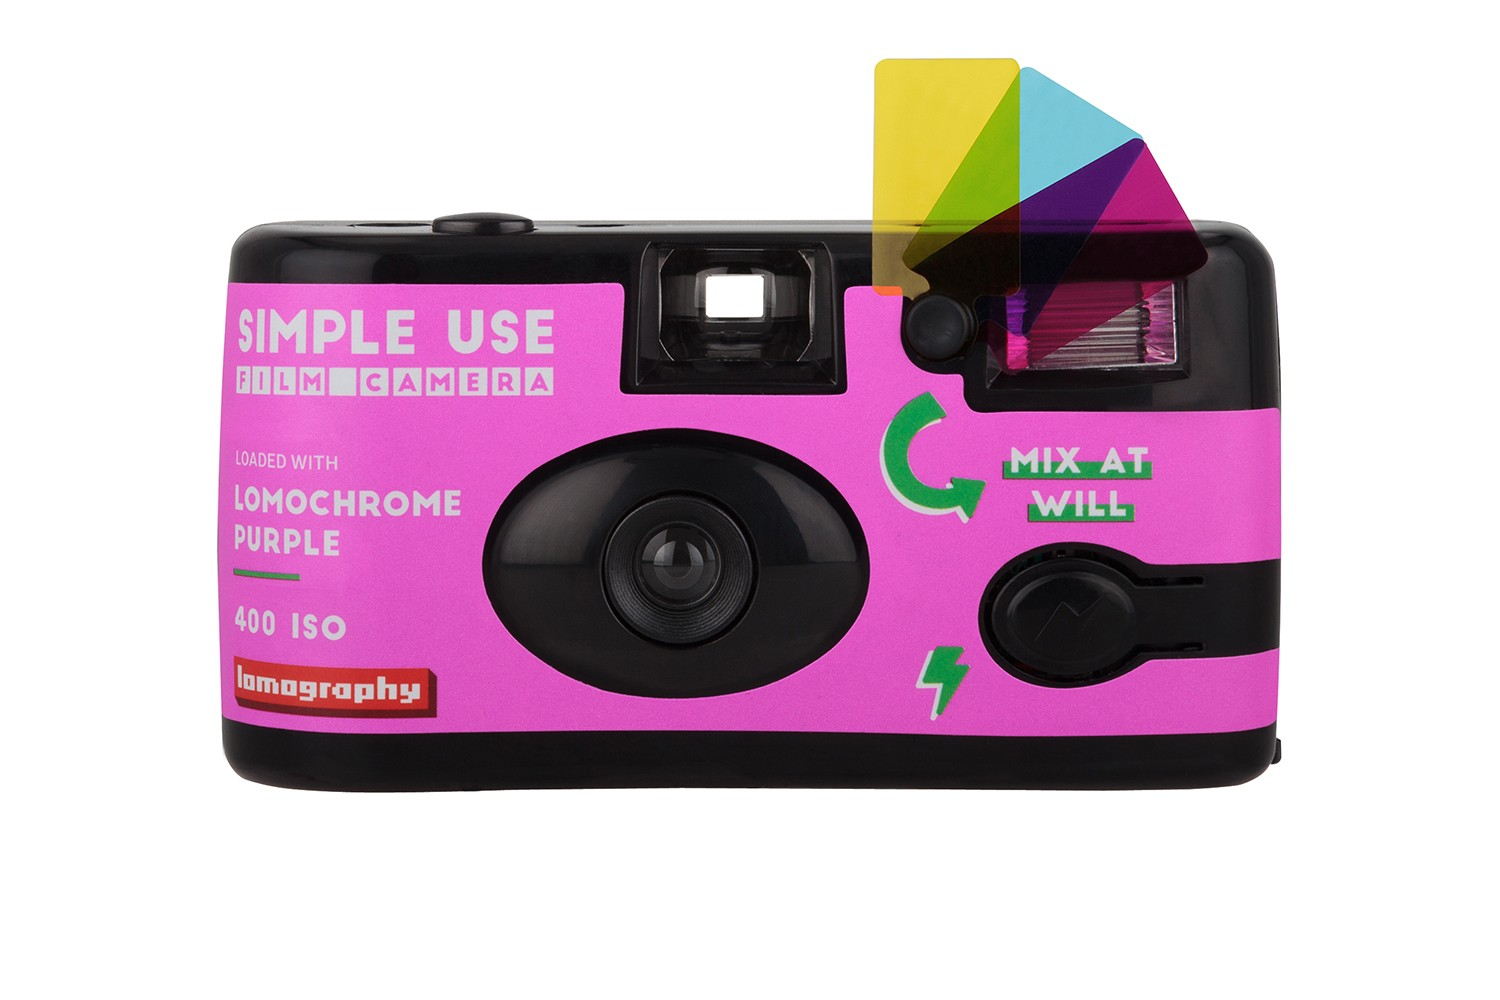 lomography_simple_use_film_camera_lomochrome_purple_front